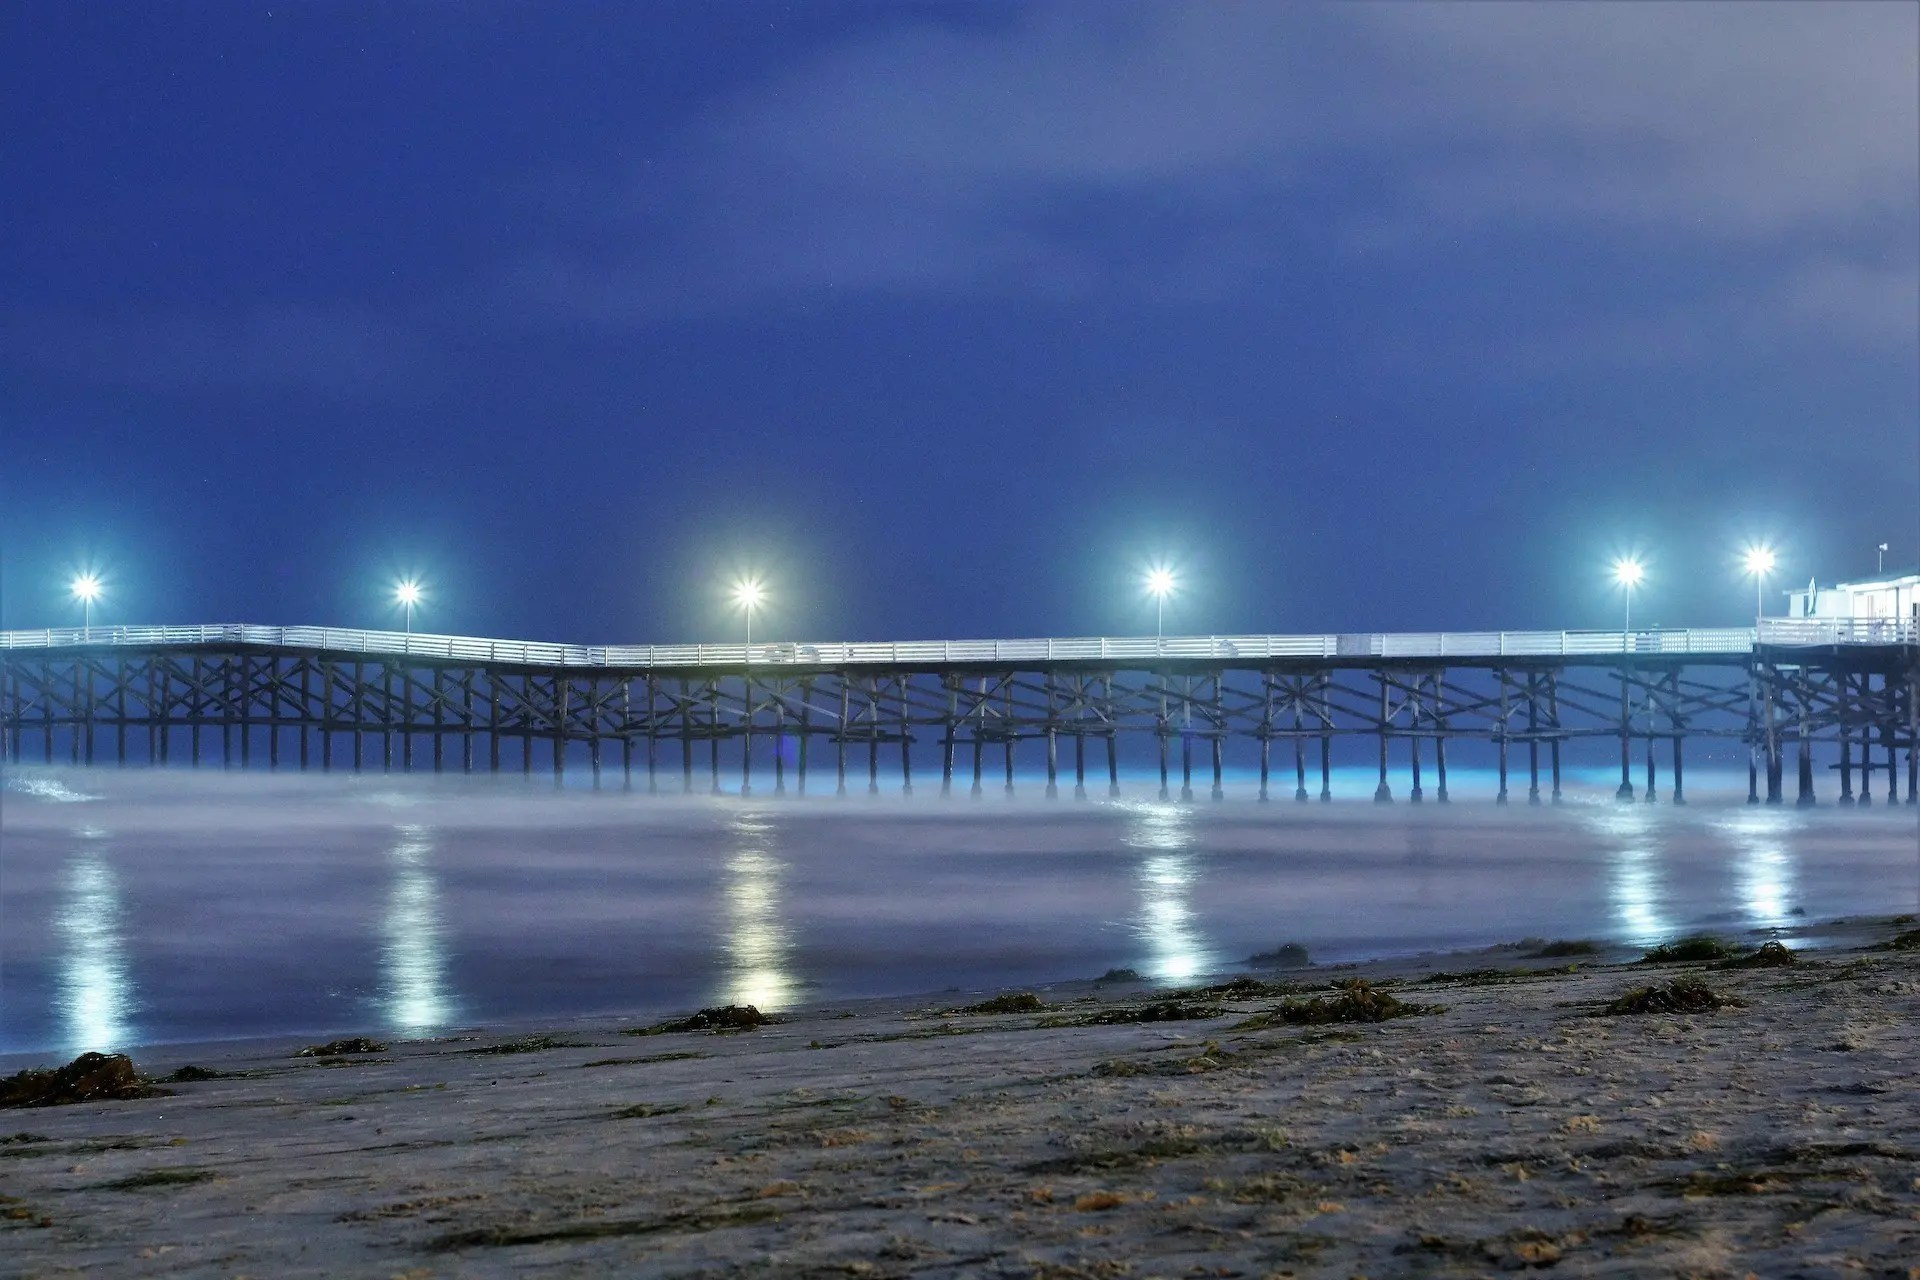 Barbara Whitman - The PB Pier